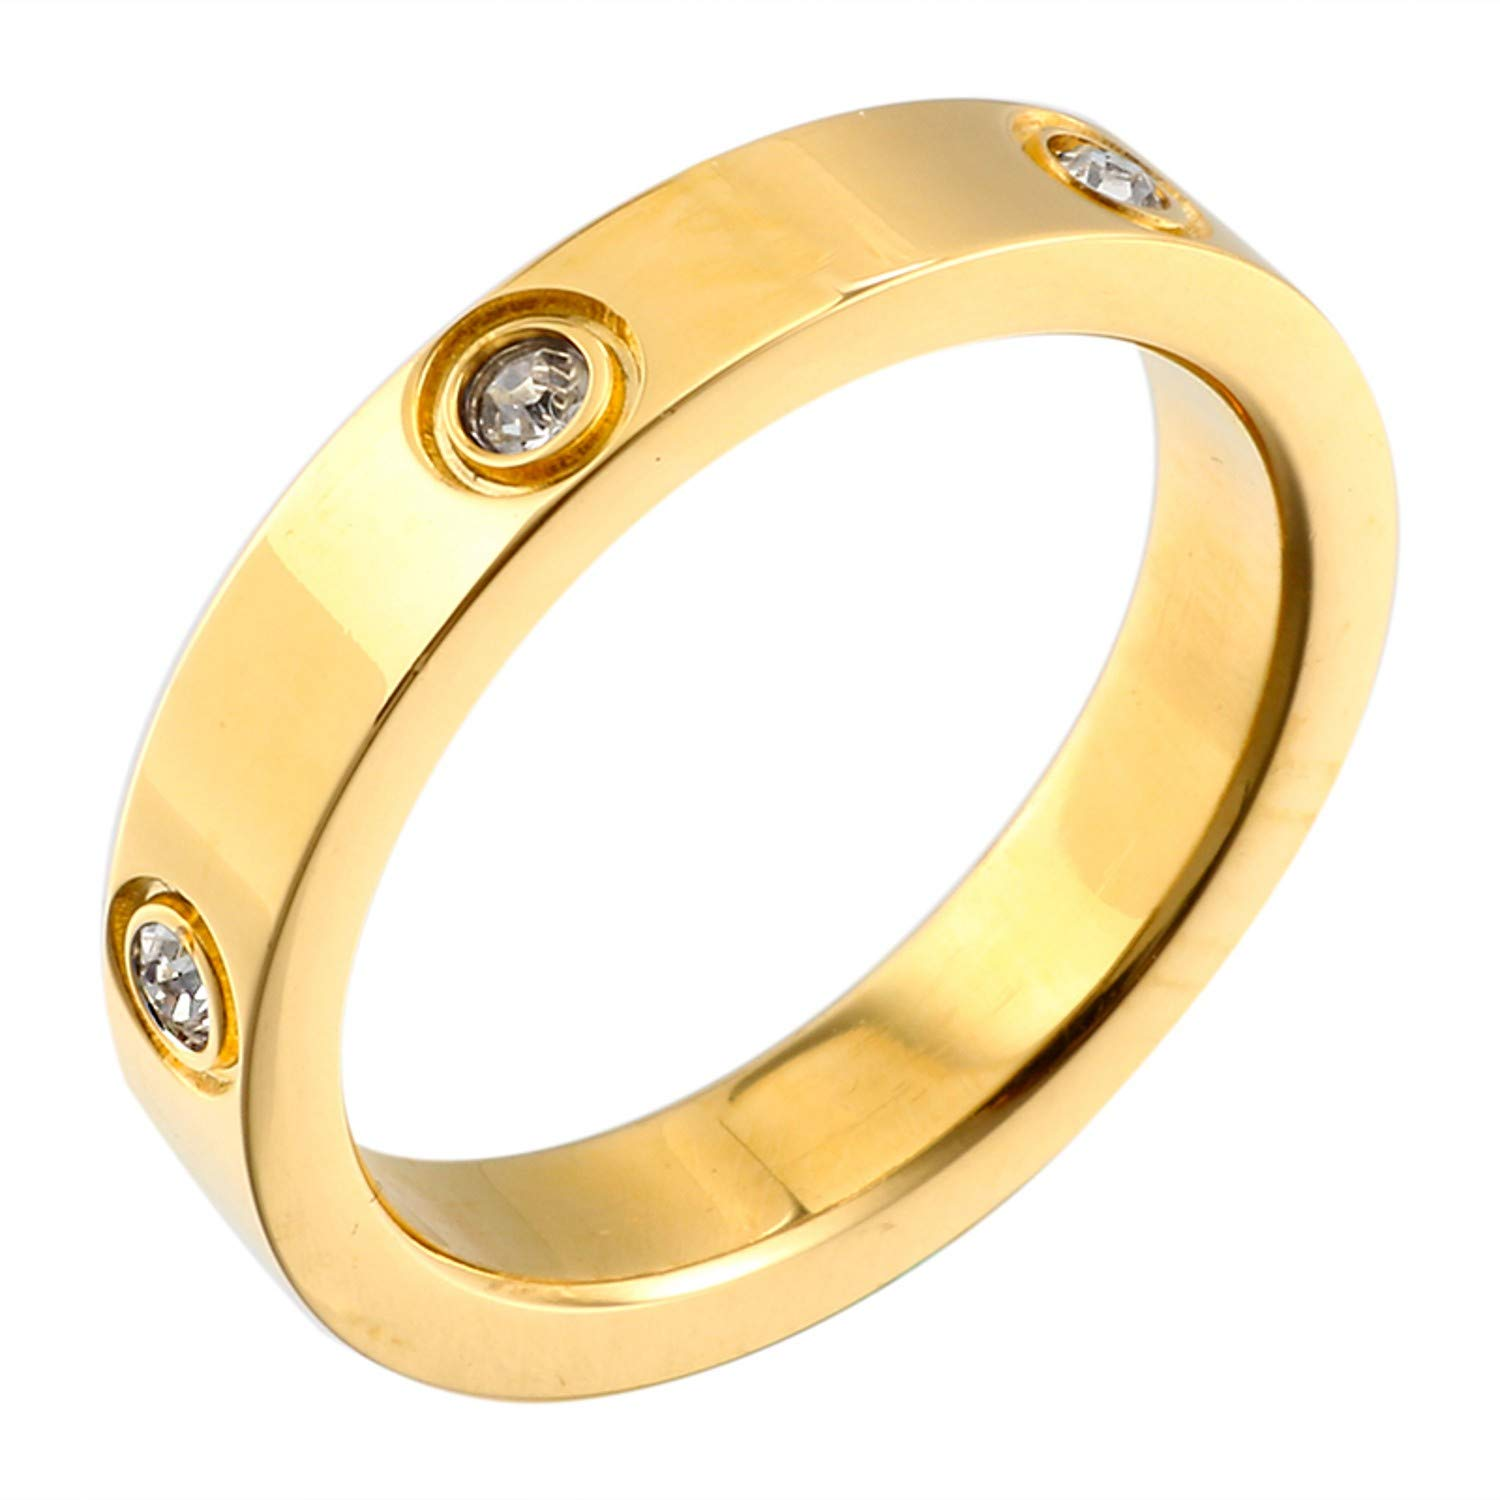 Dubeauty Love Ring Lifetime Titanium Stainless Steel Couples Wedding Engagement Anniversary Engraved Bands Silver